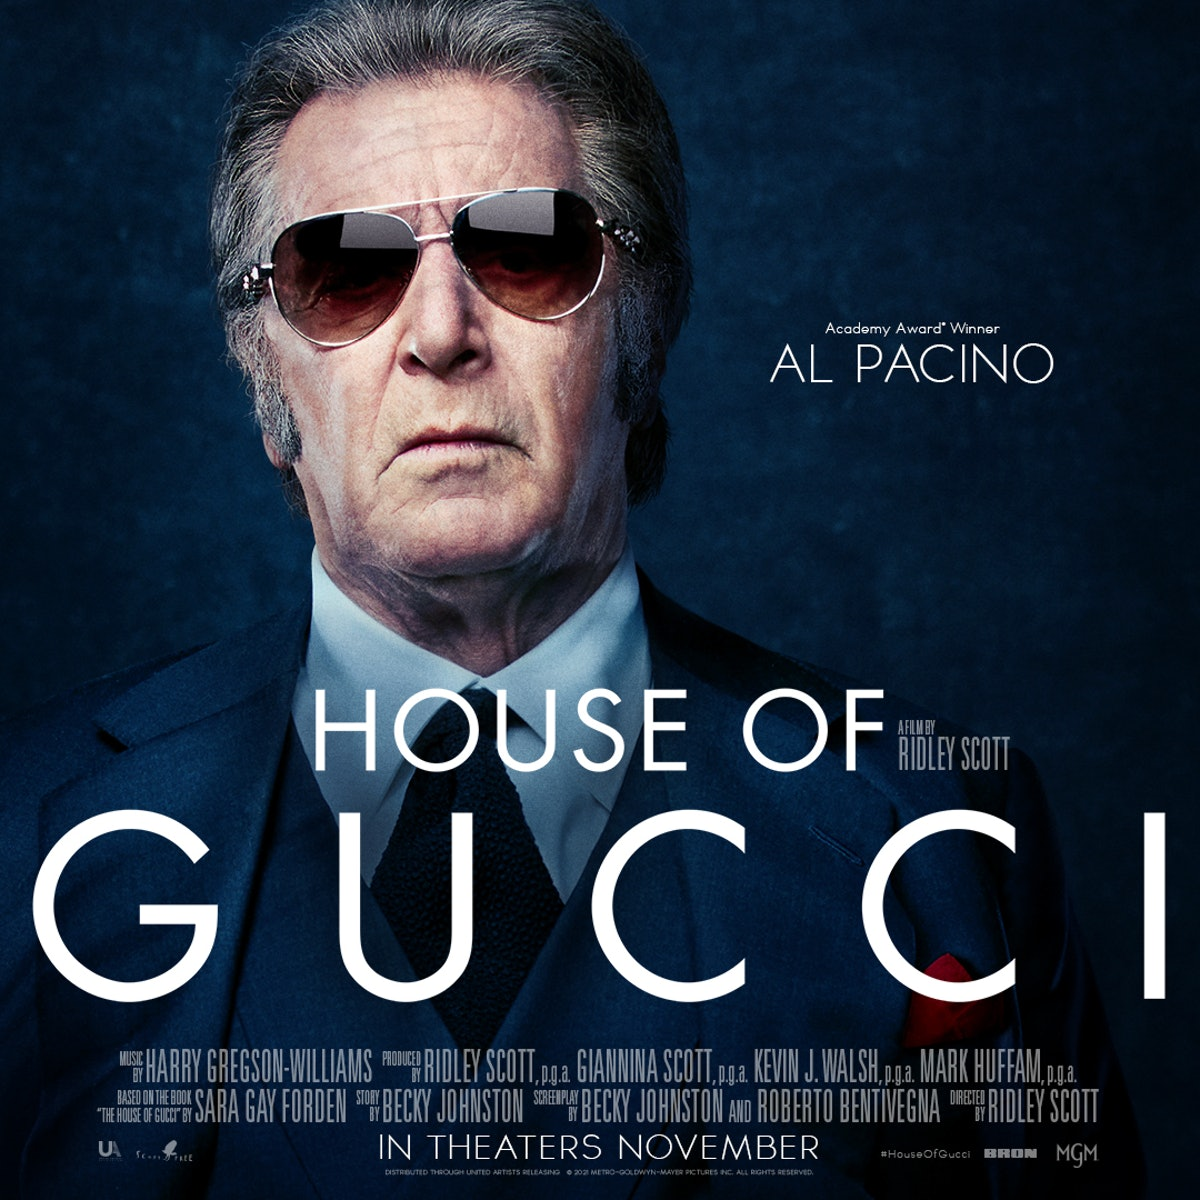 This is Al Pacino as a member of the Gucci family